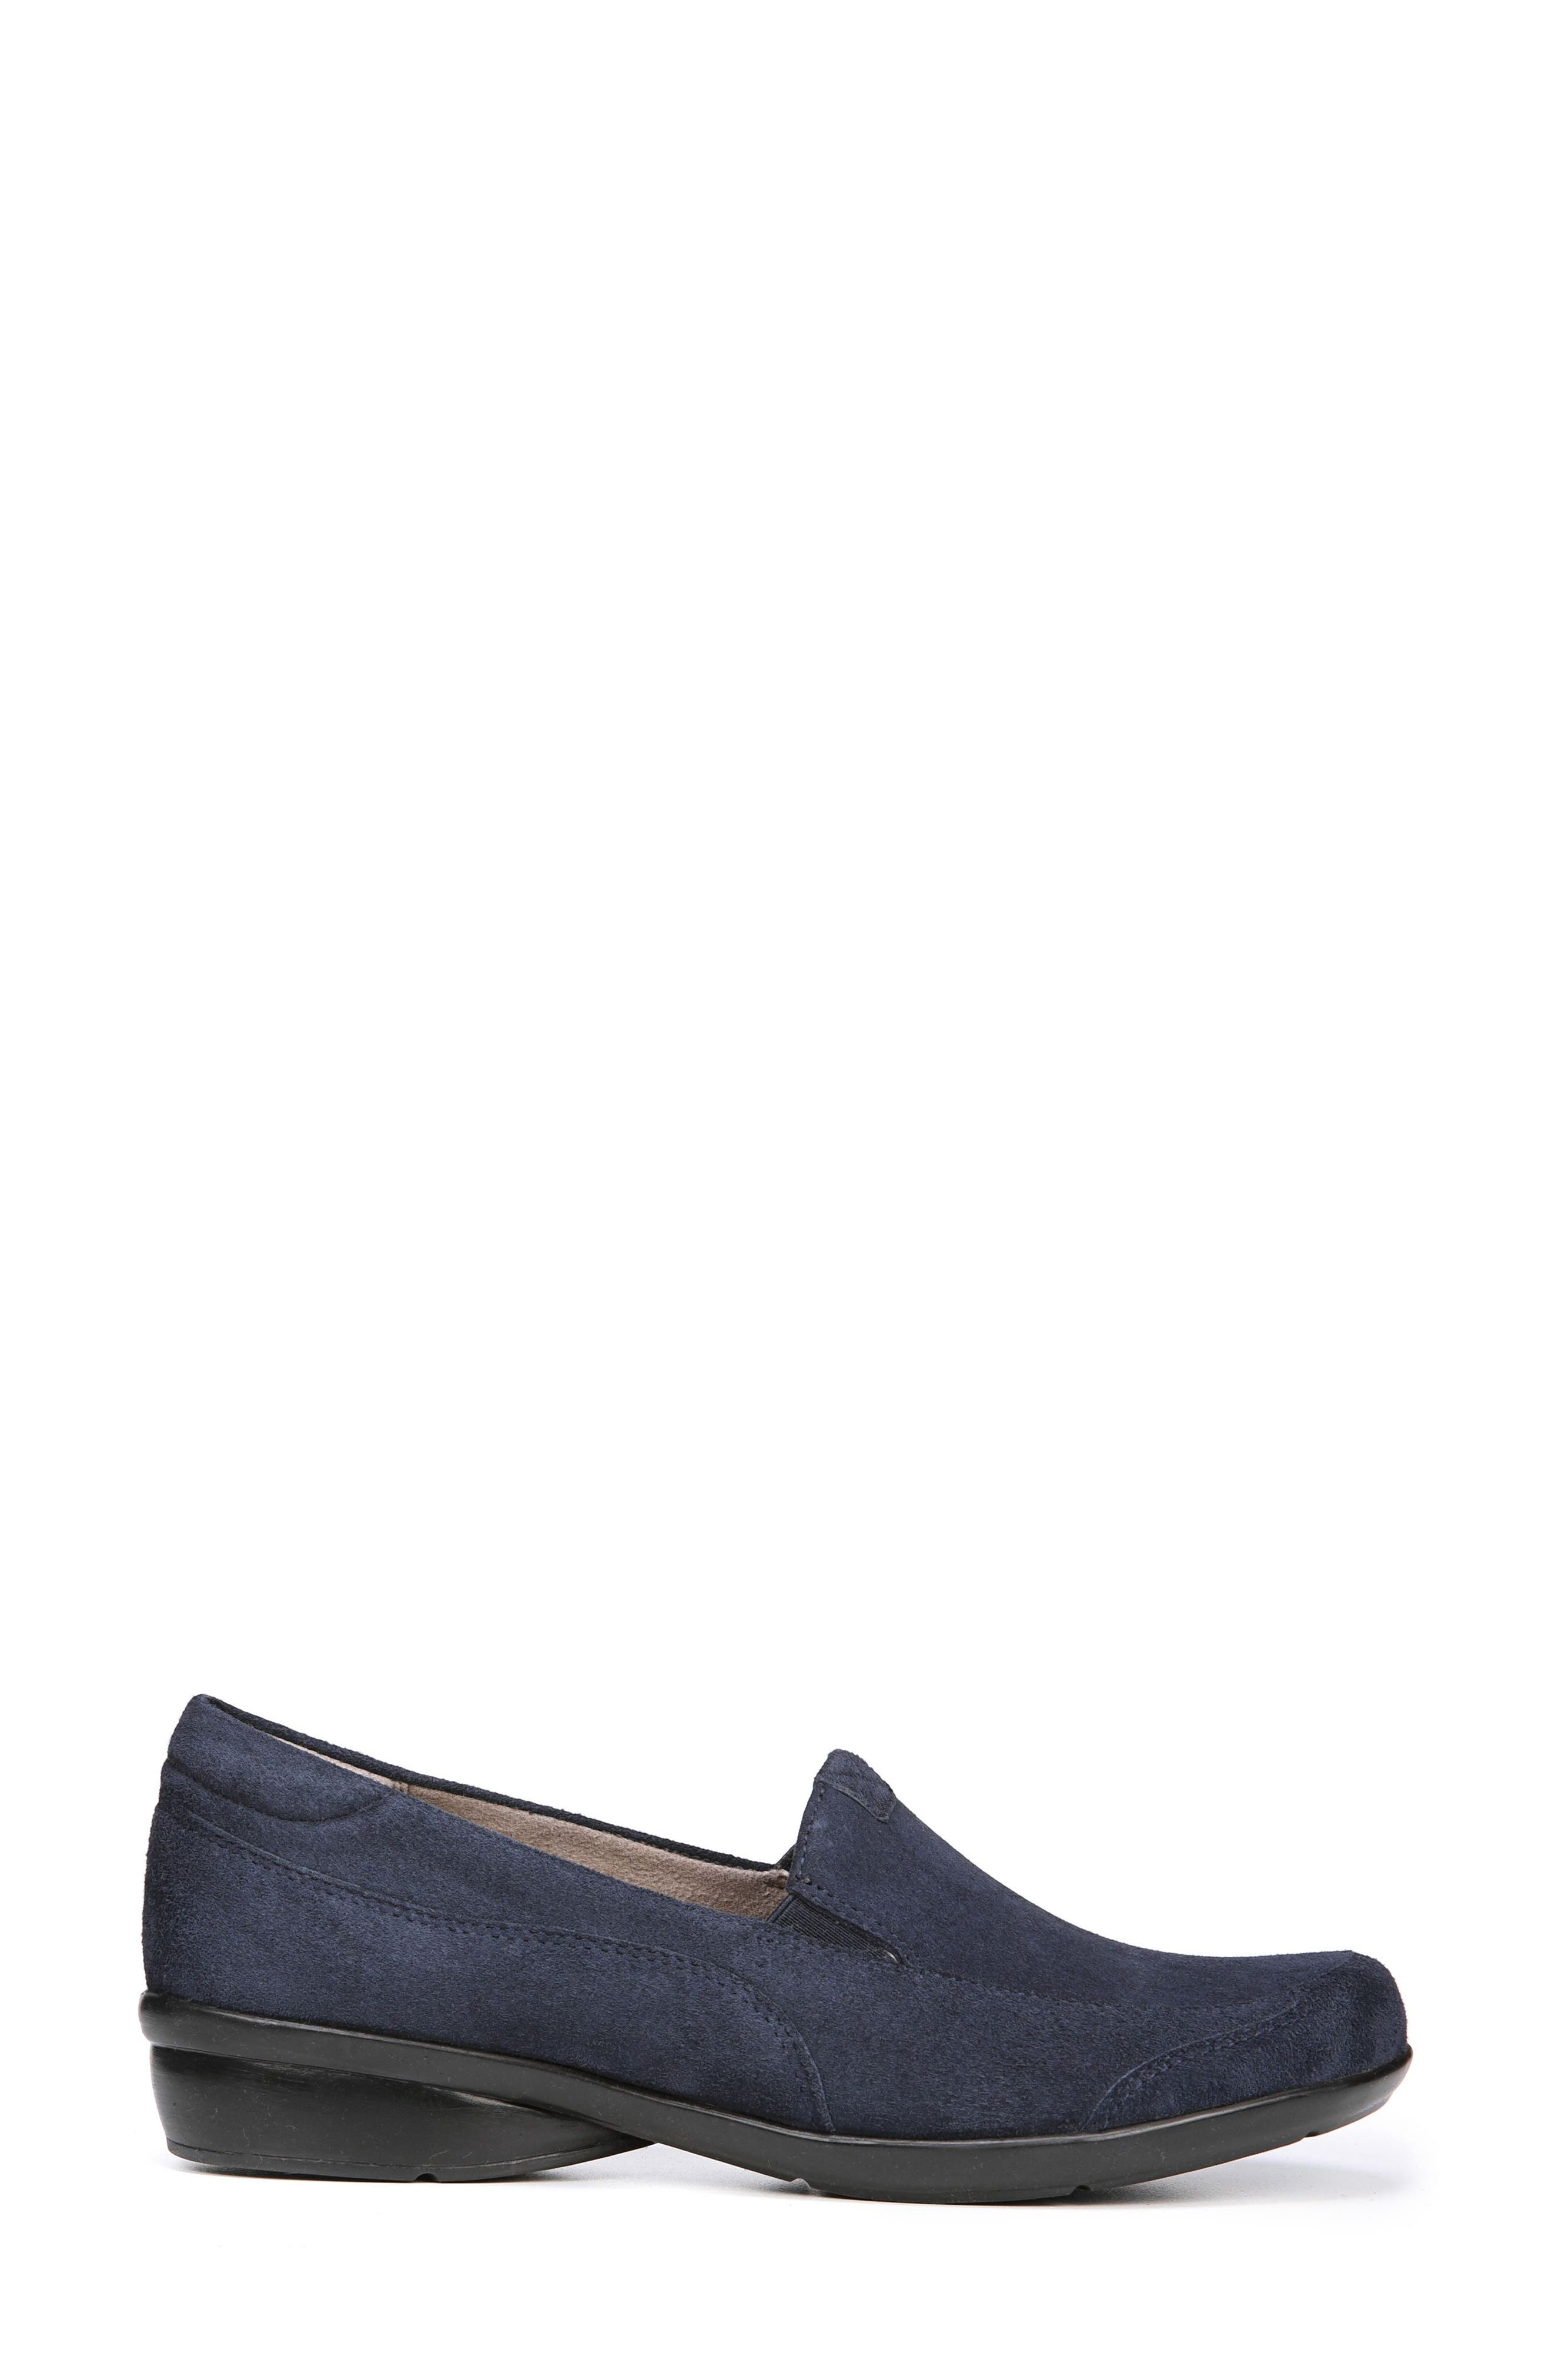 'Channing' Loafer,                             Alternate thumbnail 3, color,                             Navy Suede